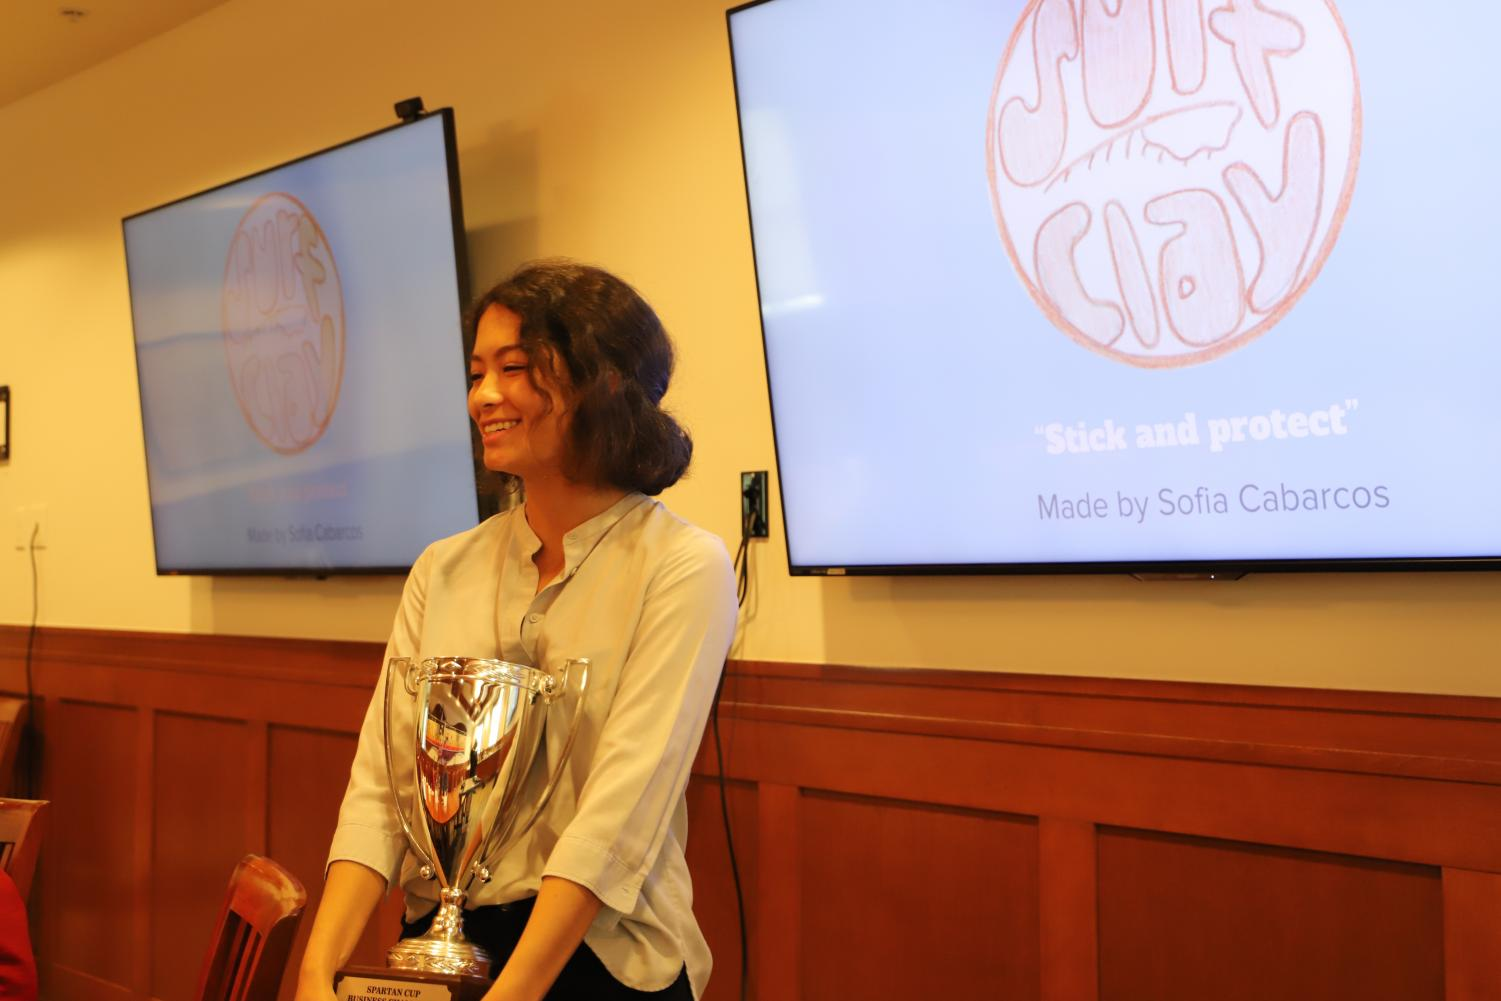 Winner Sofia Cabarcos and her Surf Clay